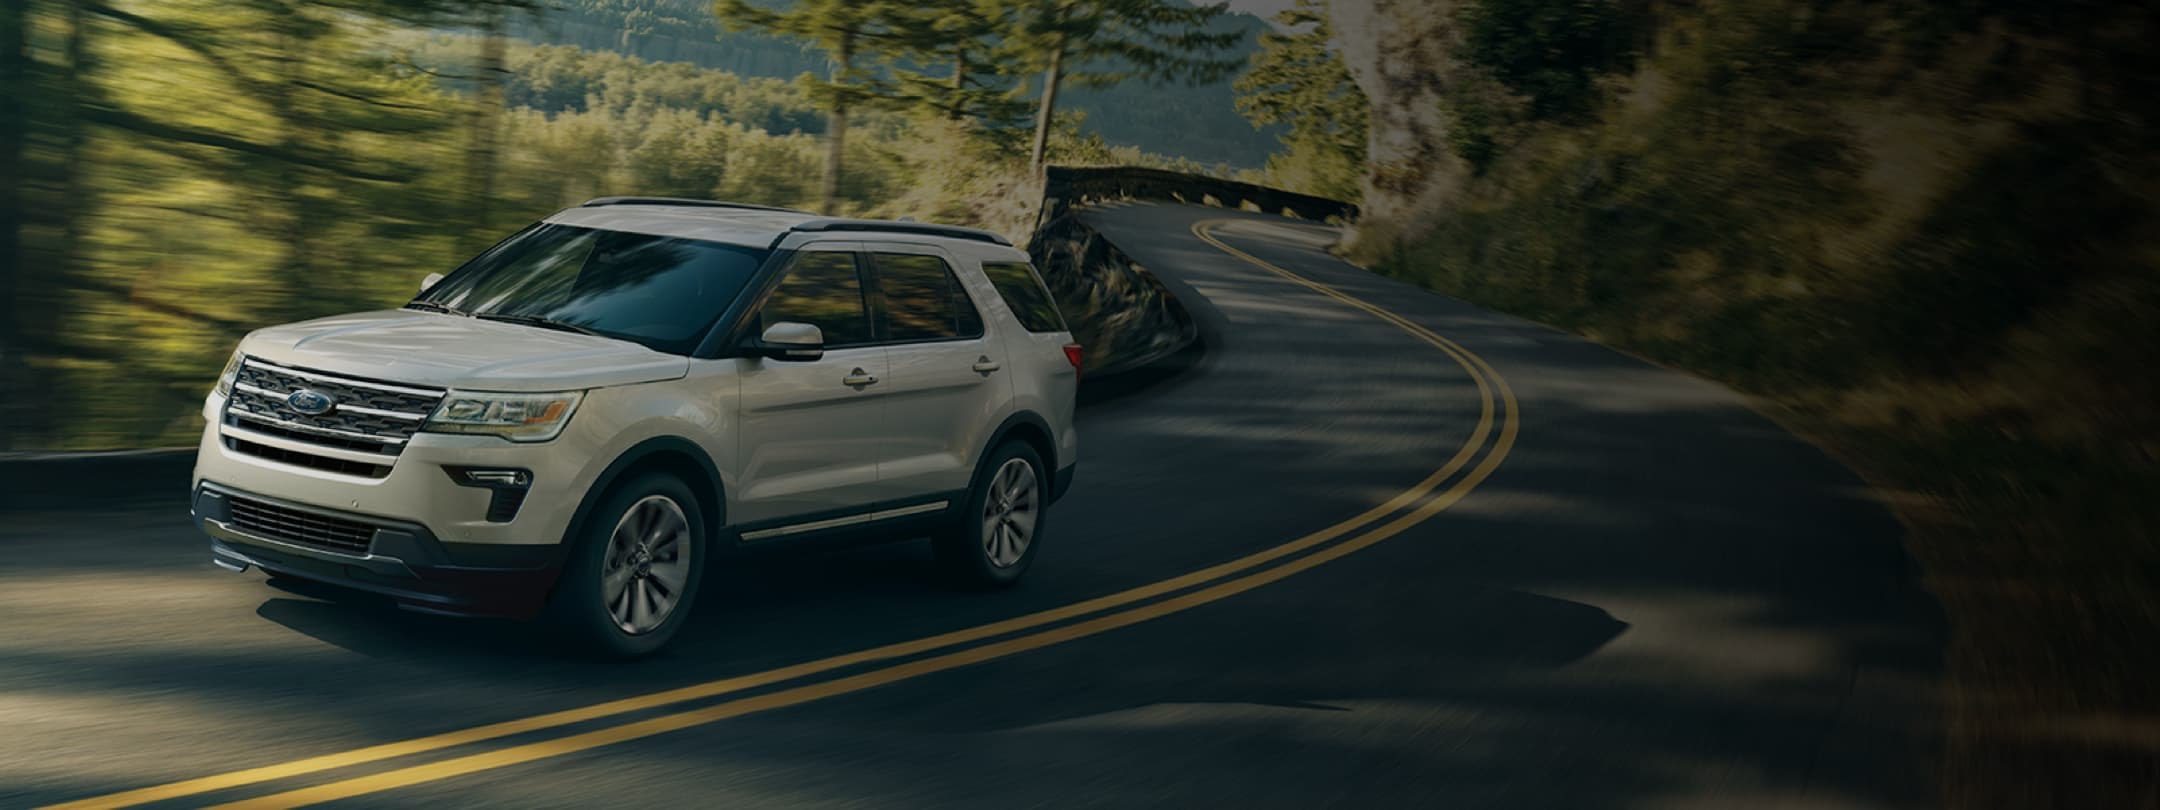 Ford SUV driving on a winding road.